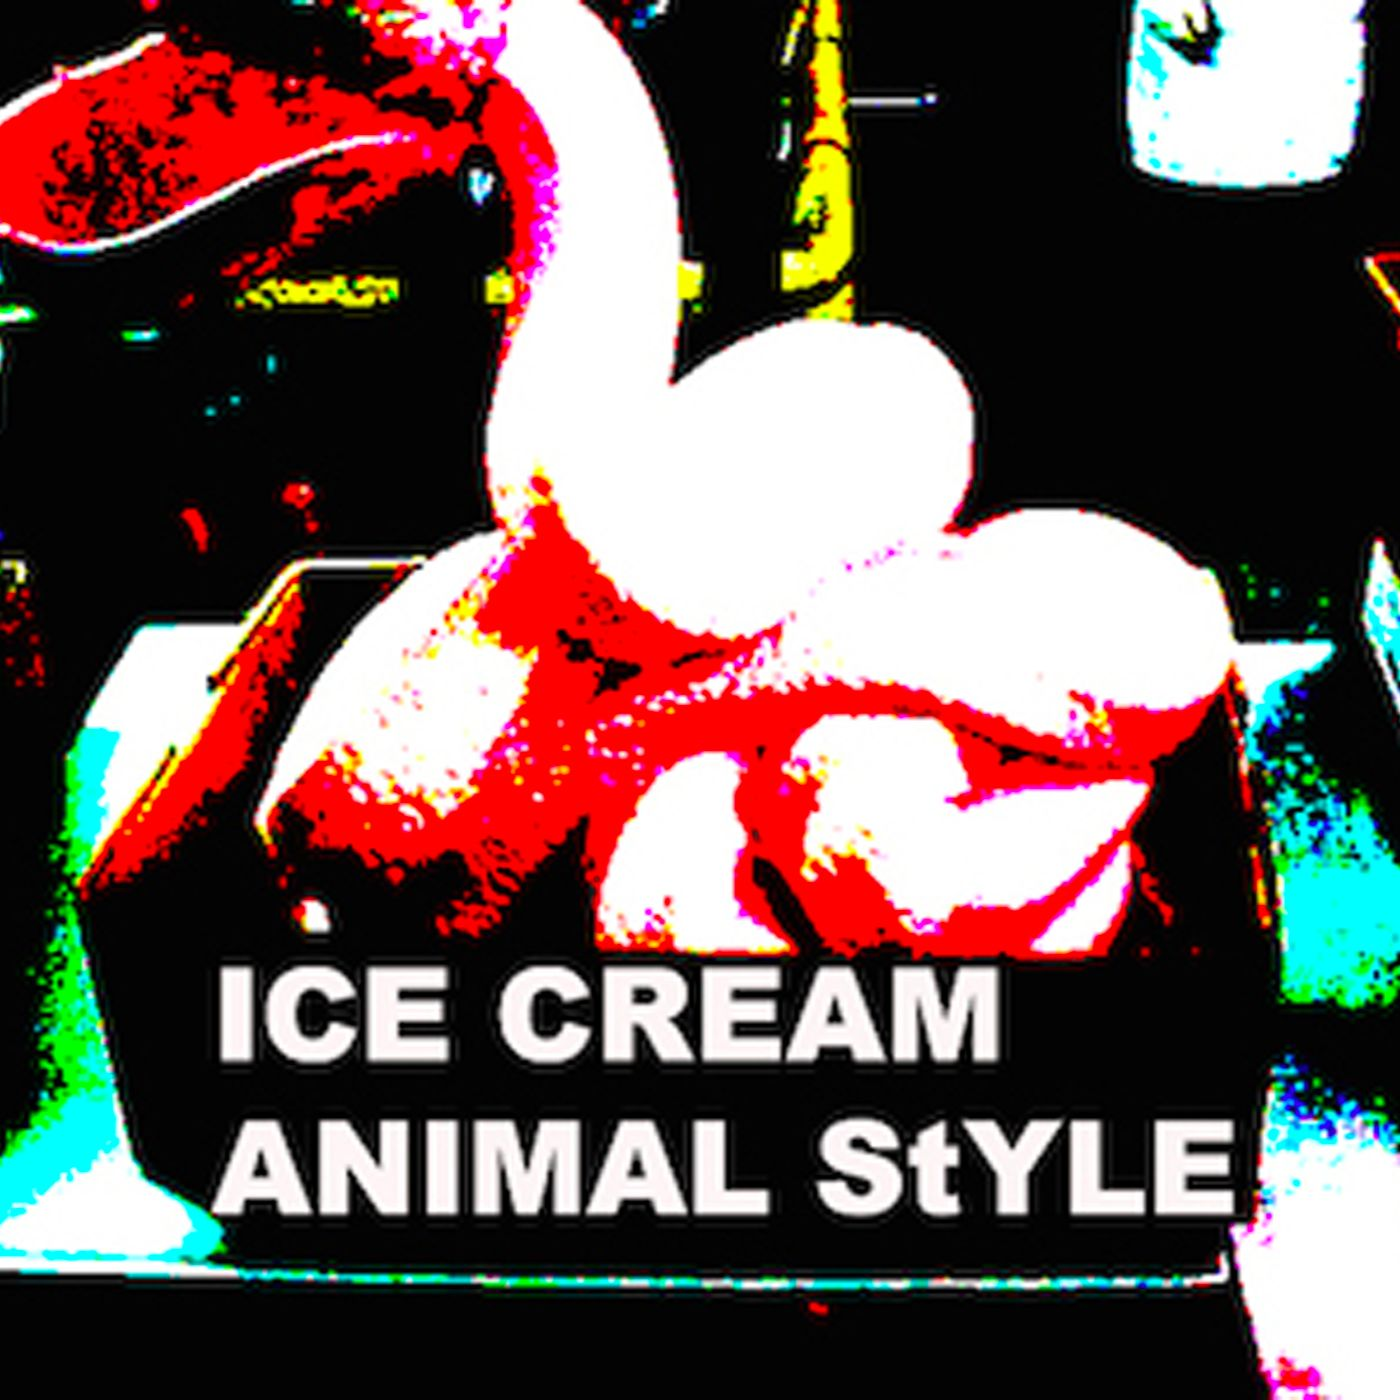 ICE CREAM ANIMAL STYLE